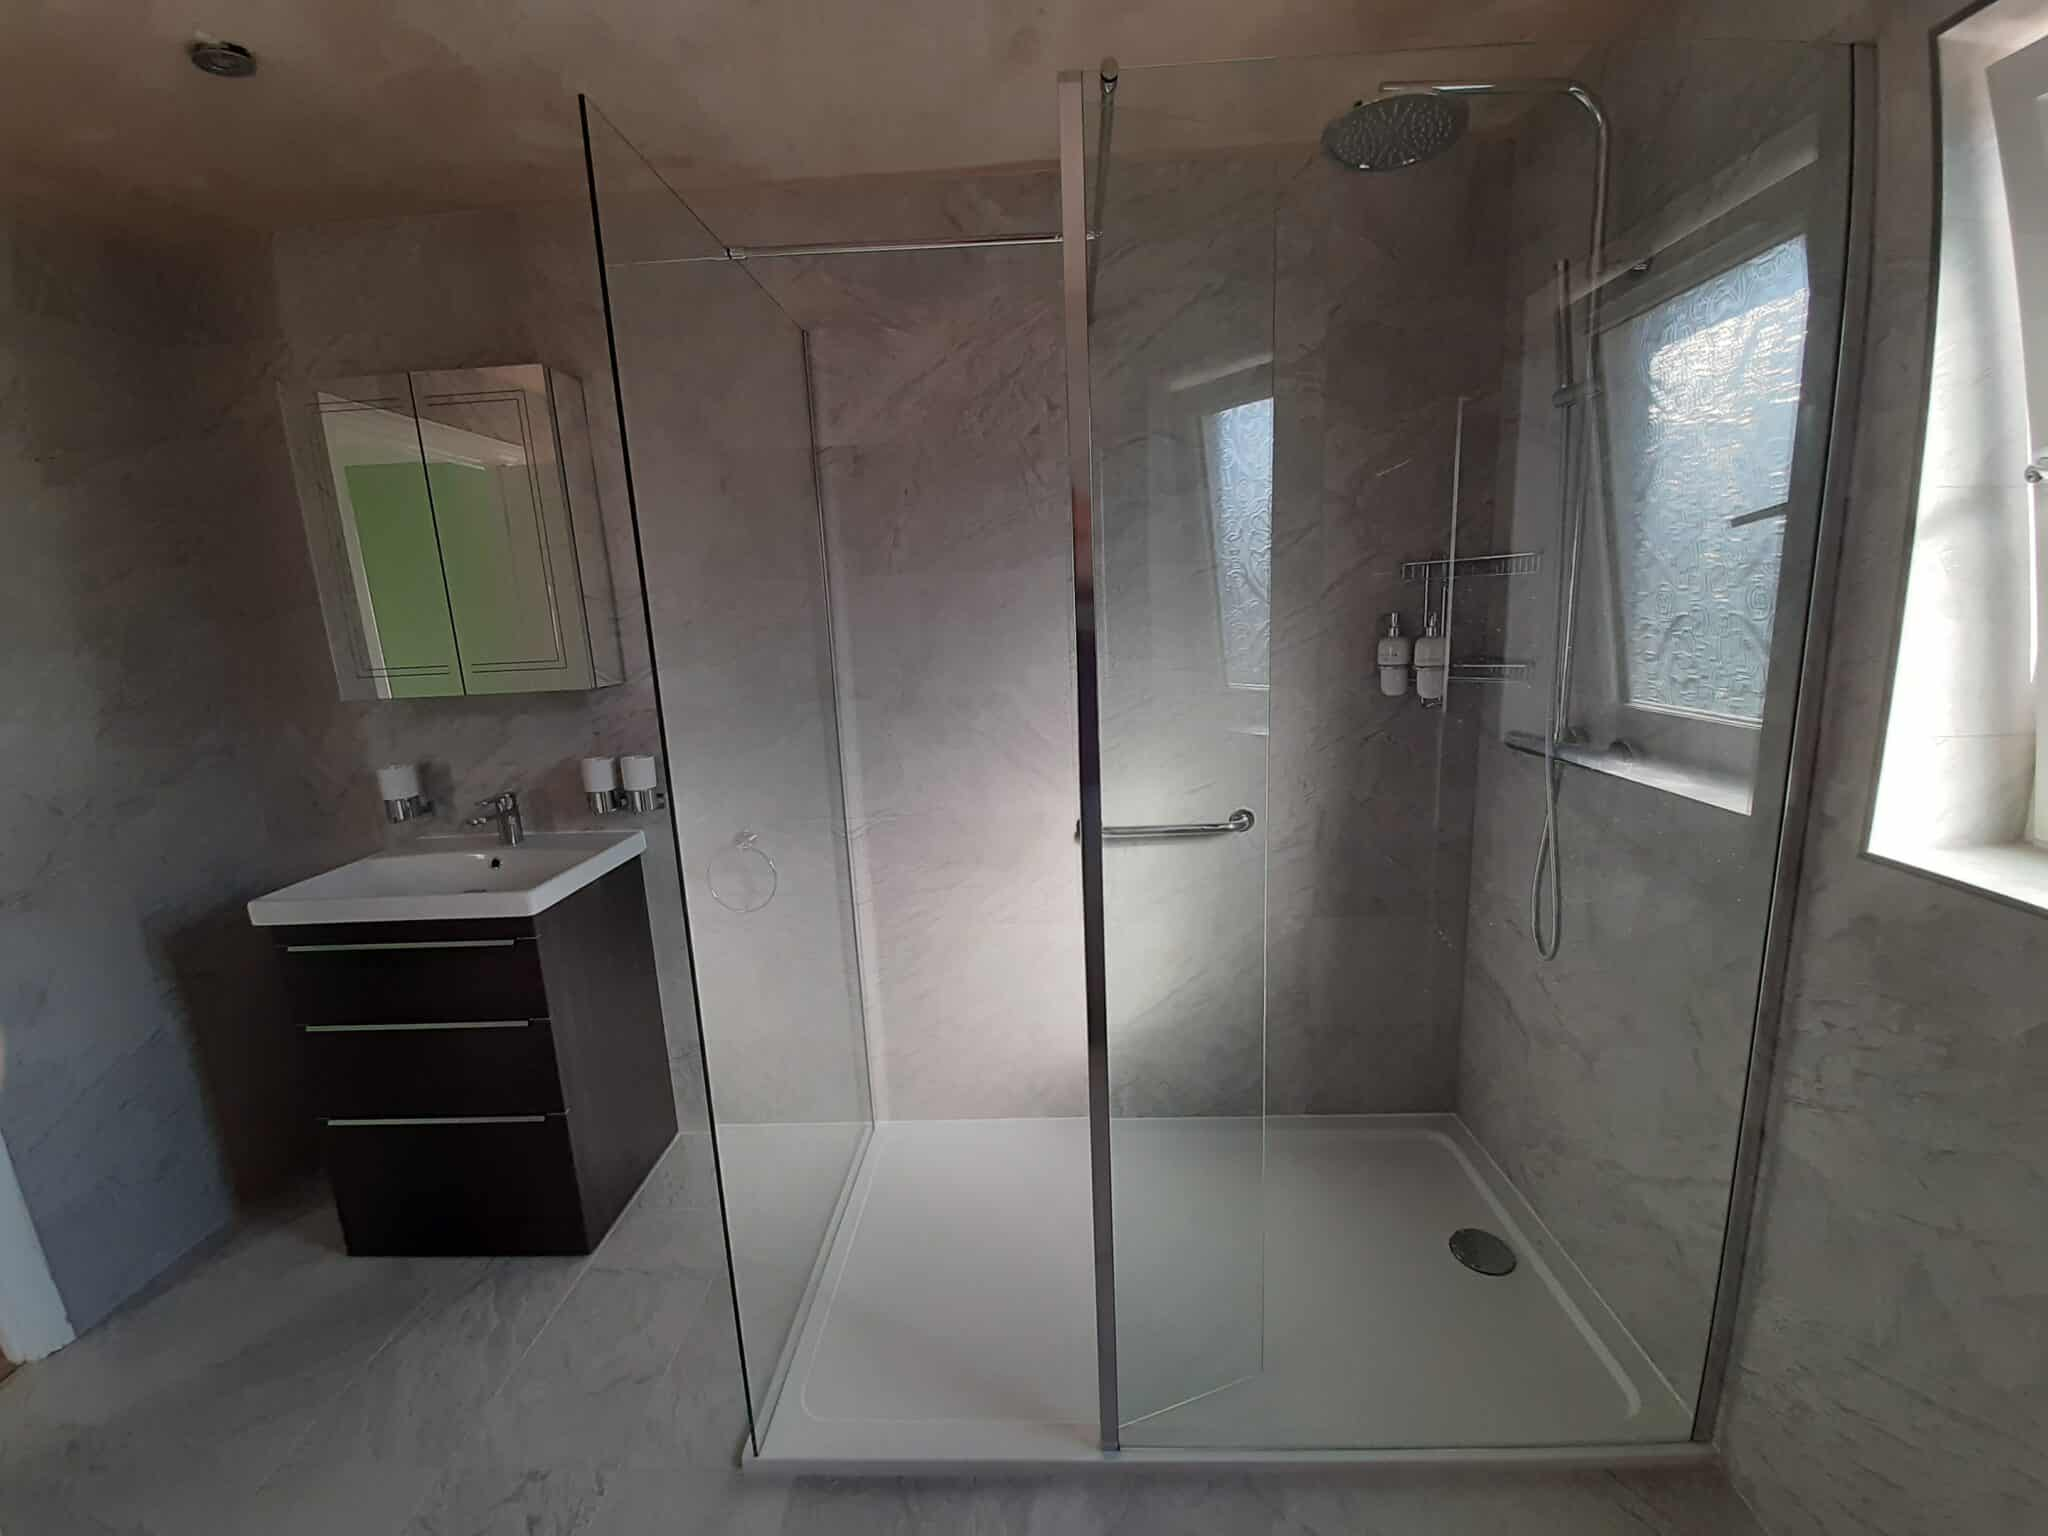 Moulton Northampton ensuite & small bathroom converted to large room 2